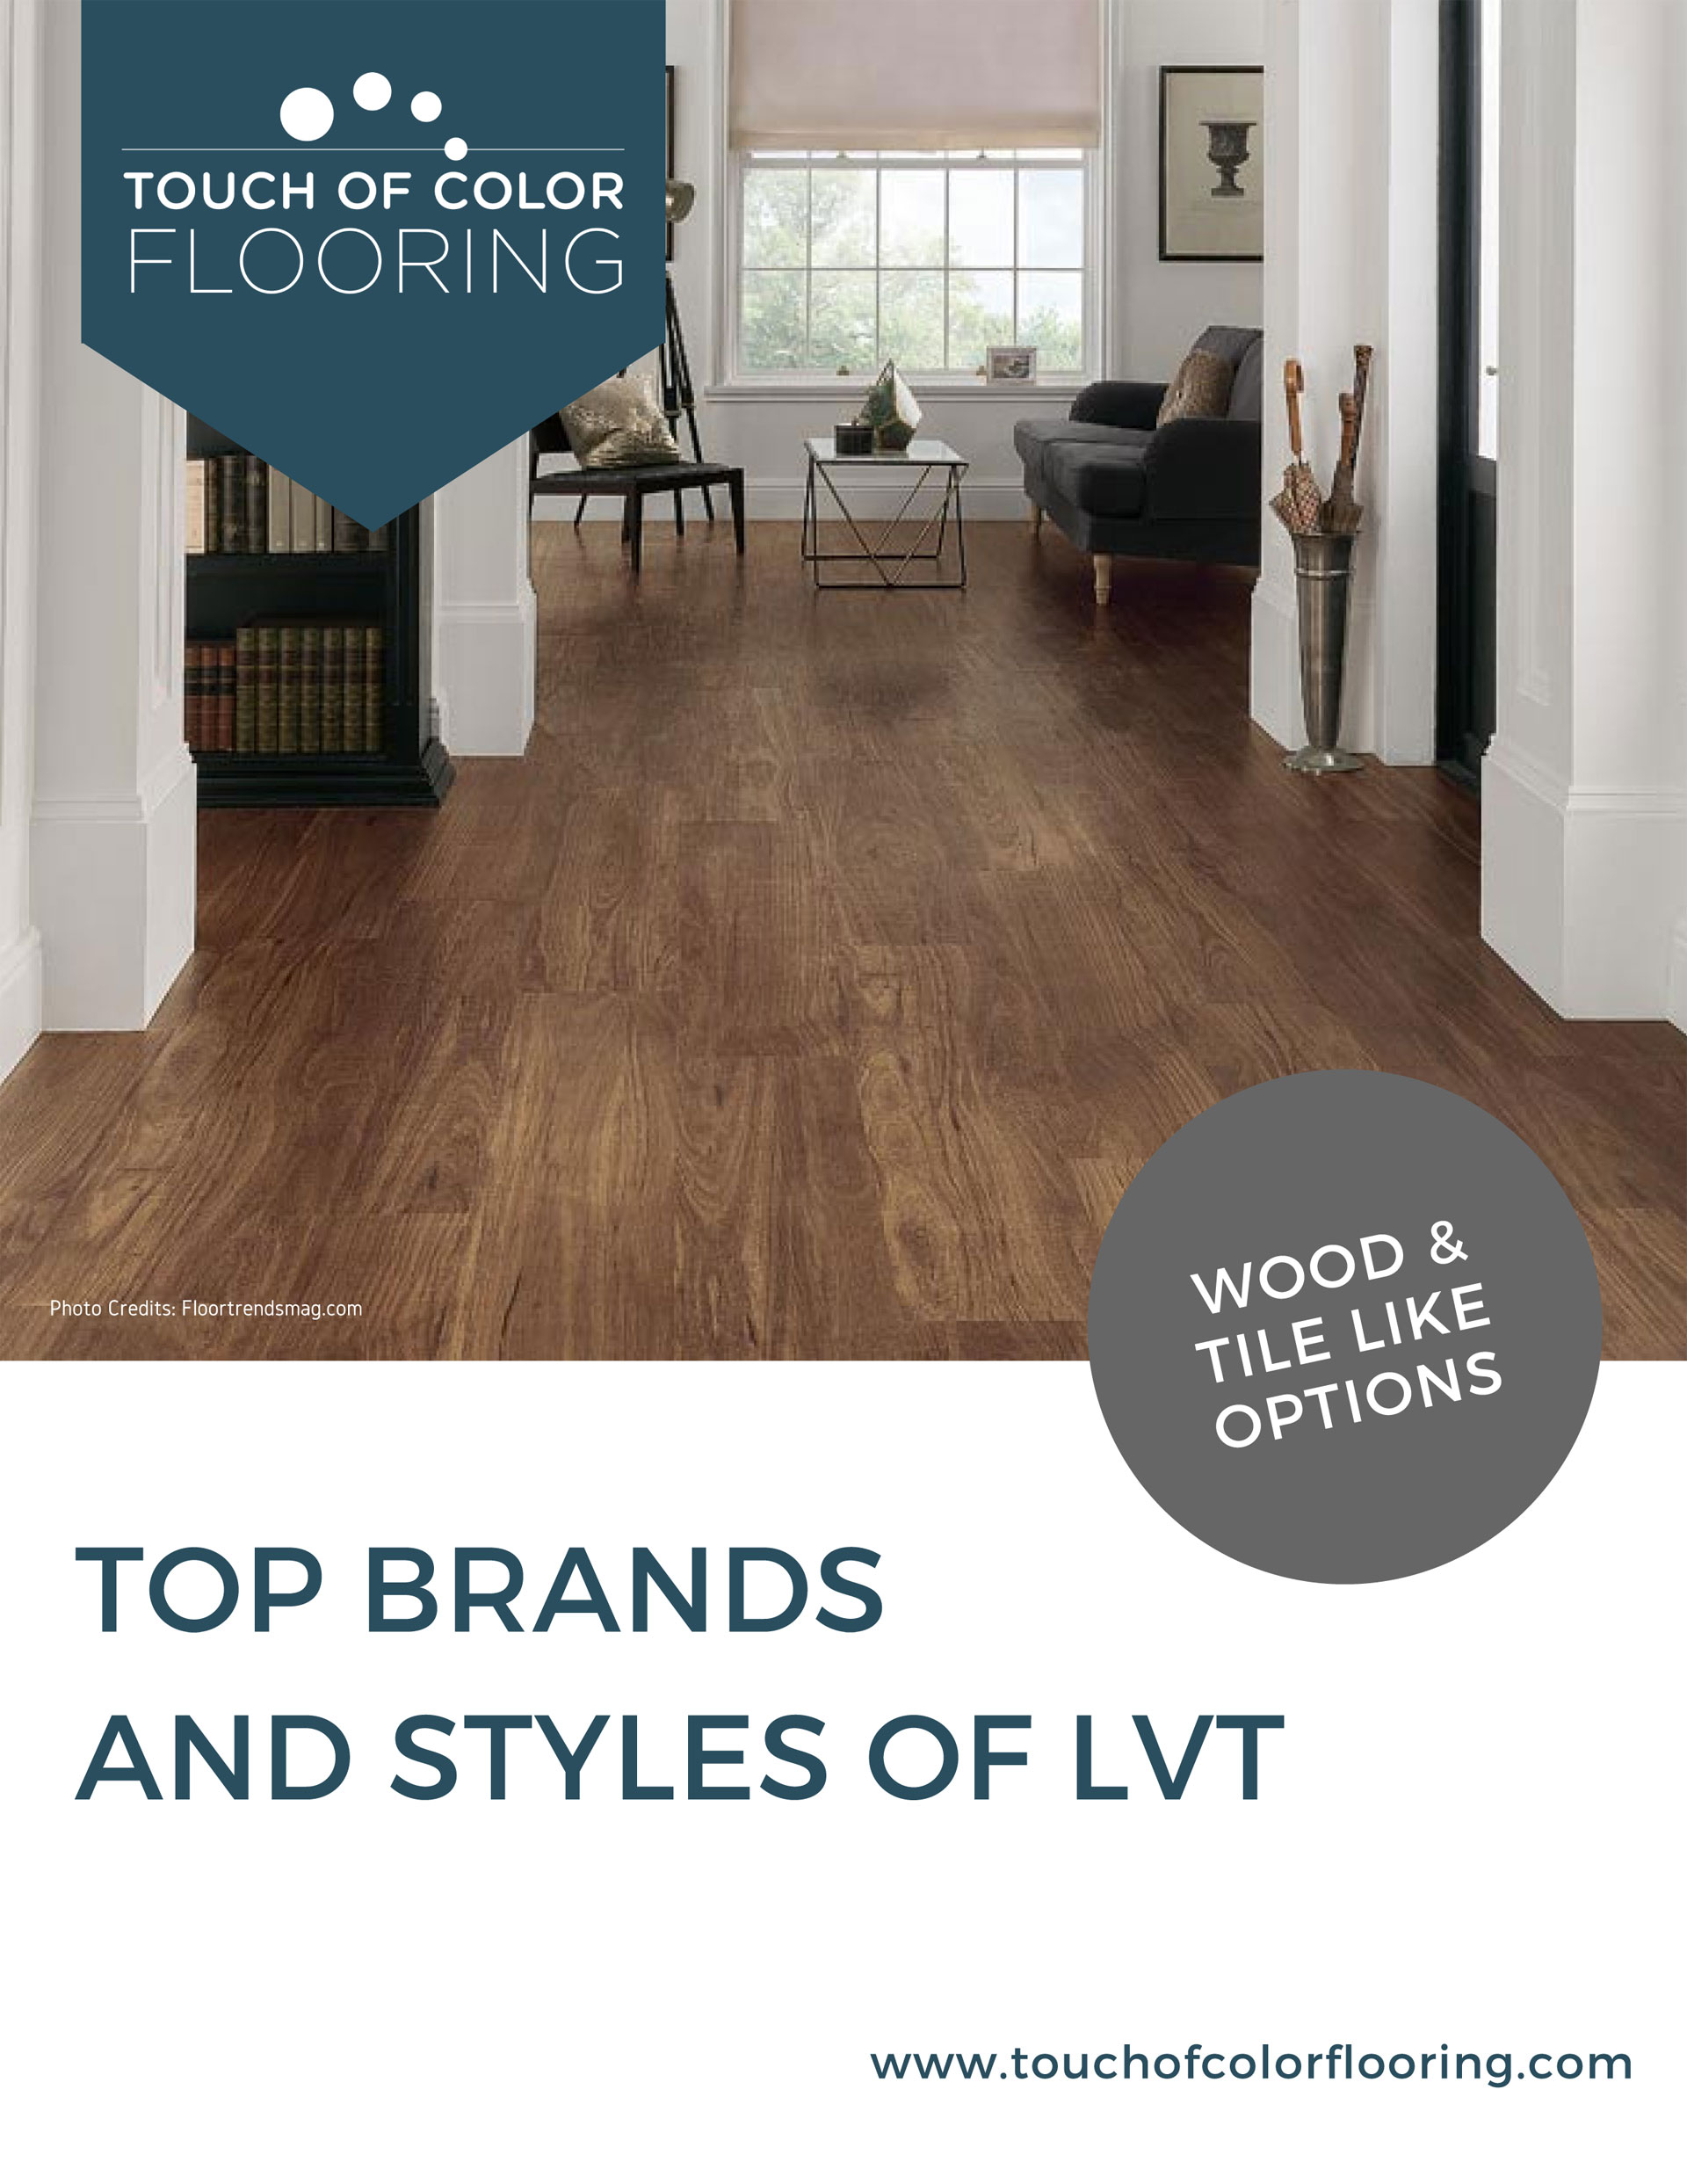 Top Brands And Styles Of LVT - What does lvt stand for in flooring